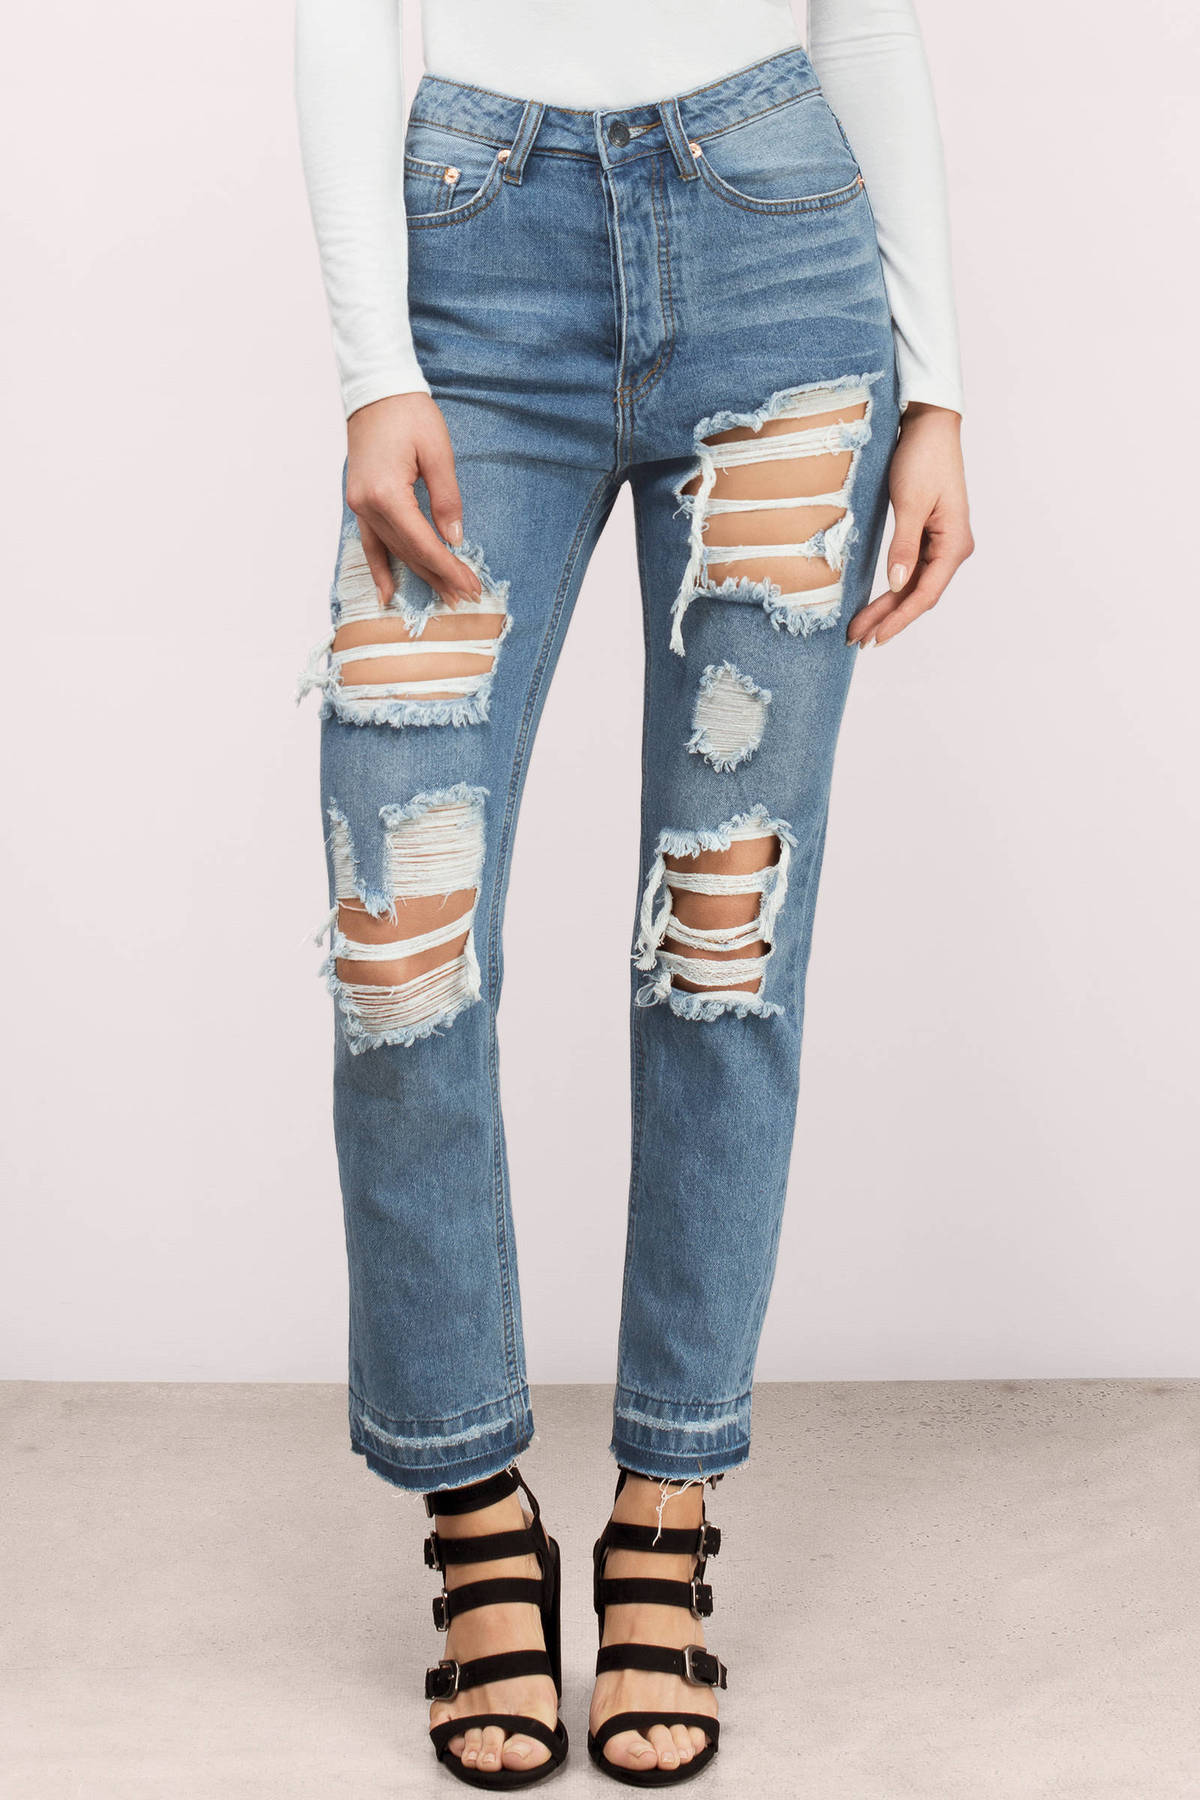 High waisted skinny jeans cheap – Global trend jeans models